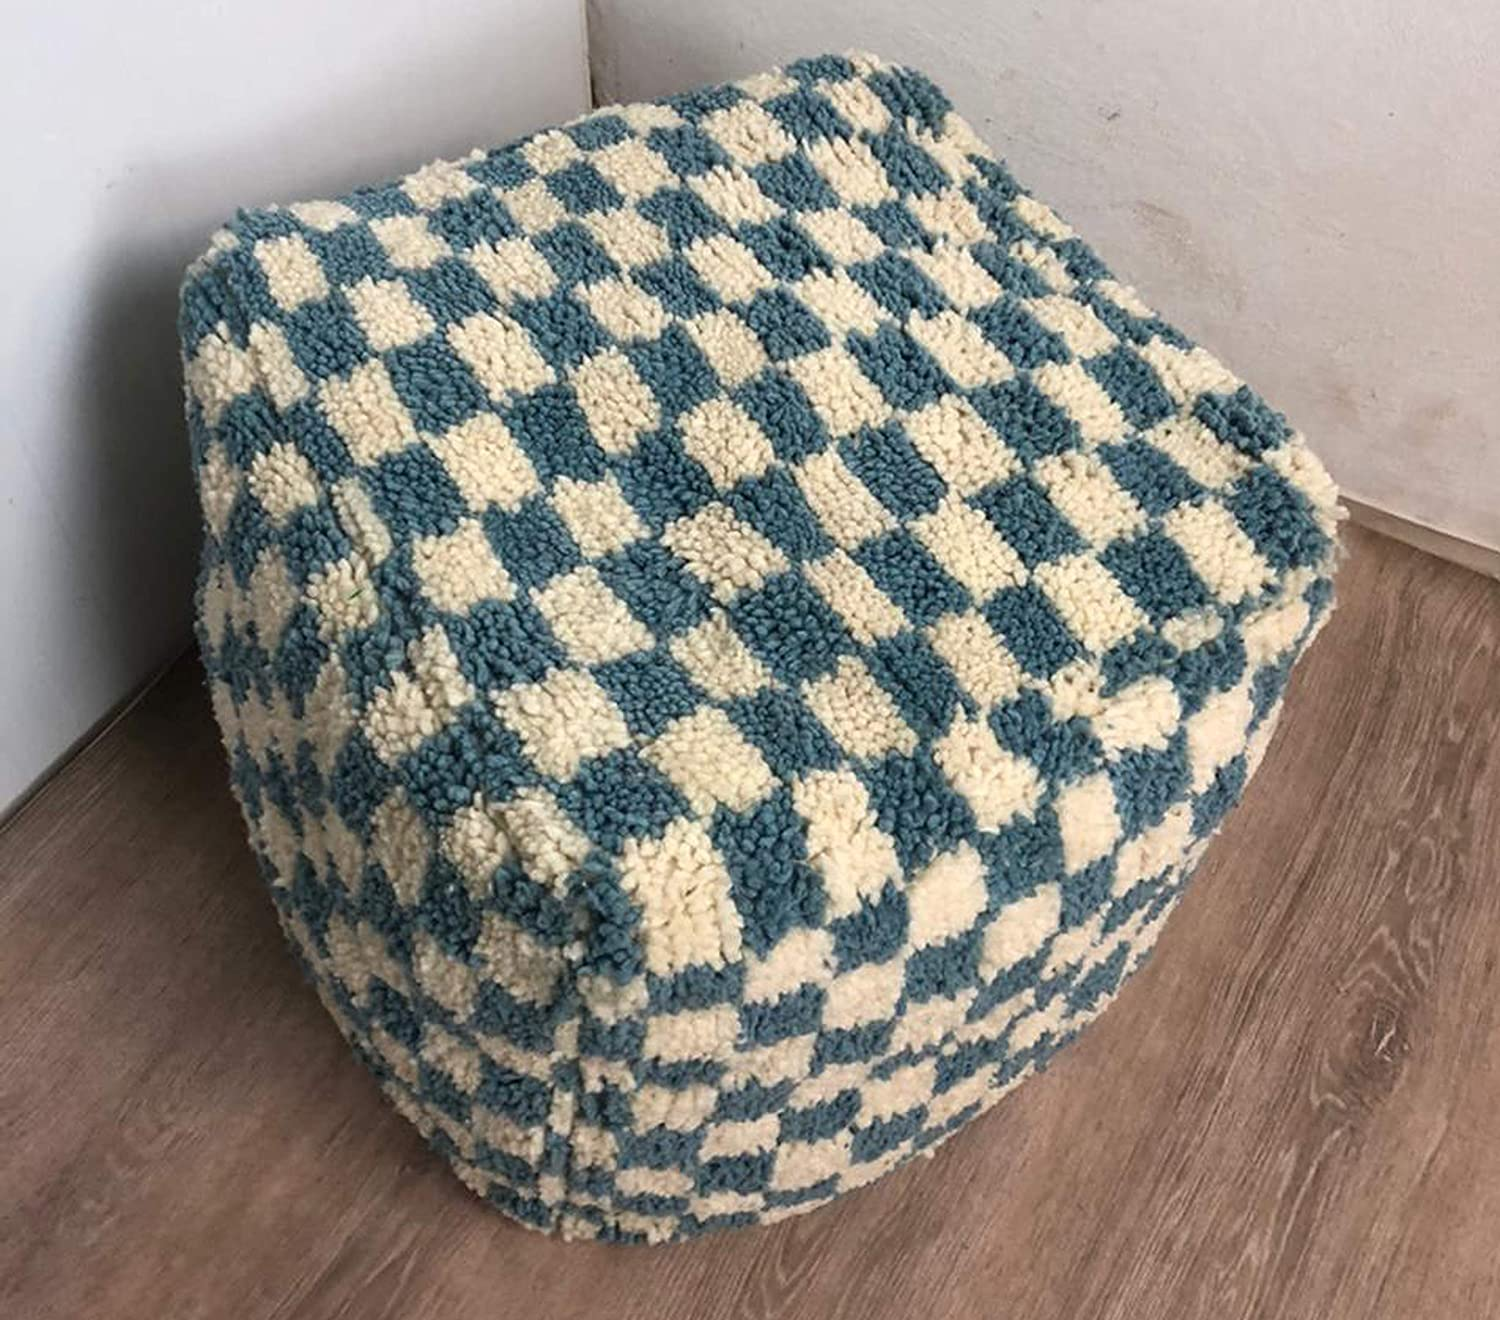 Large Moroccan Checkered Indianapolis Mall pouf cover Trust Ottoman Cush Floor Footstool